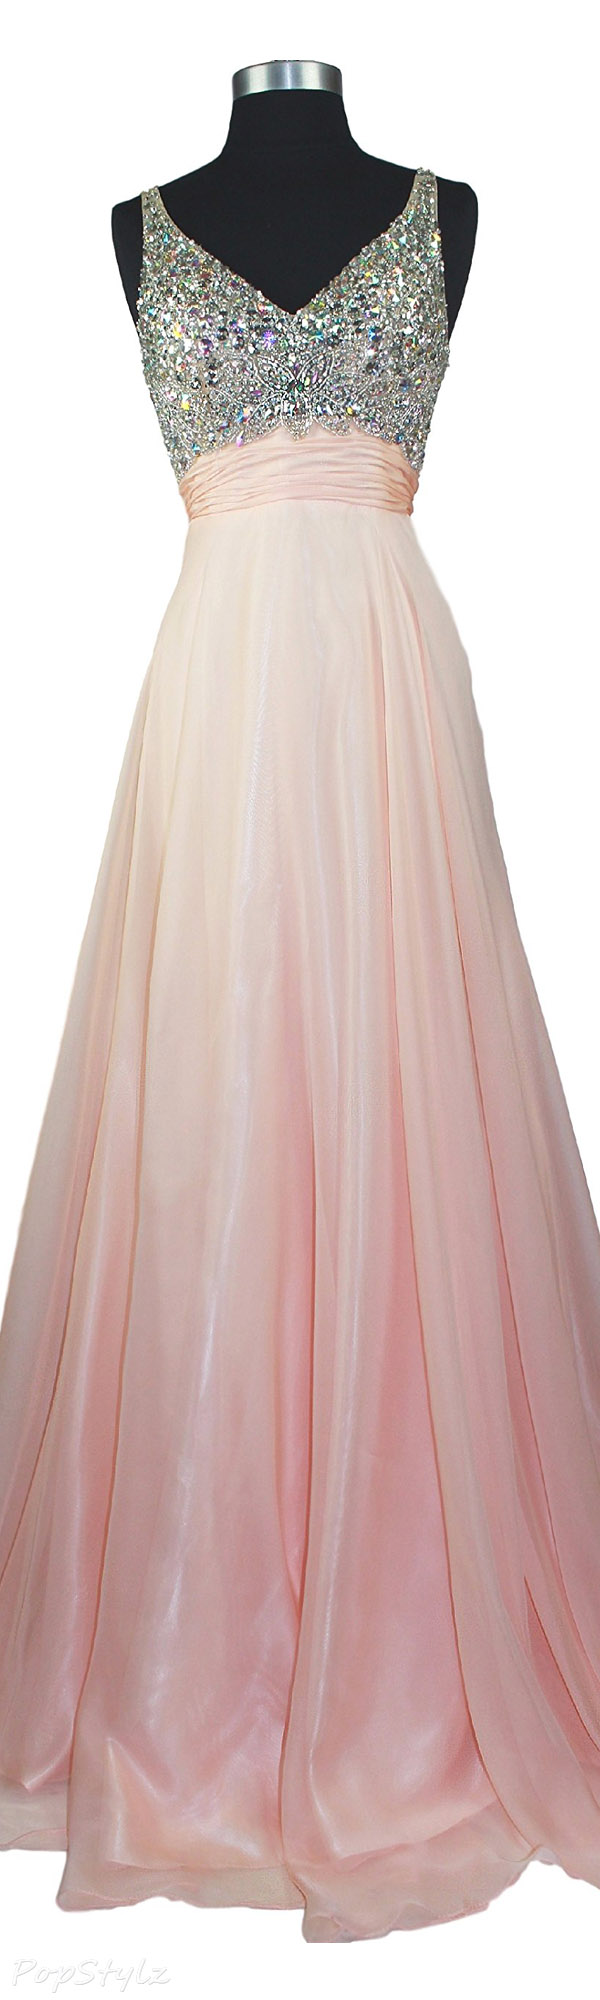 Meier Rhinestone A Line Formal Chiffon Evening Gown